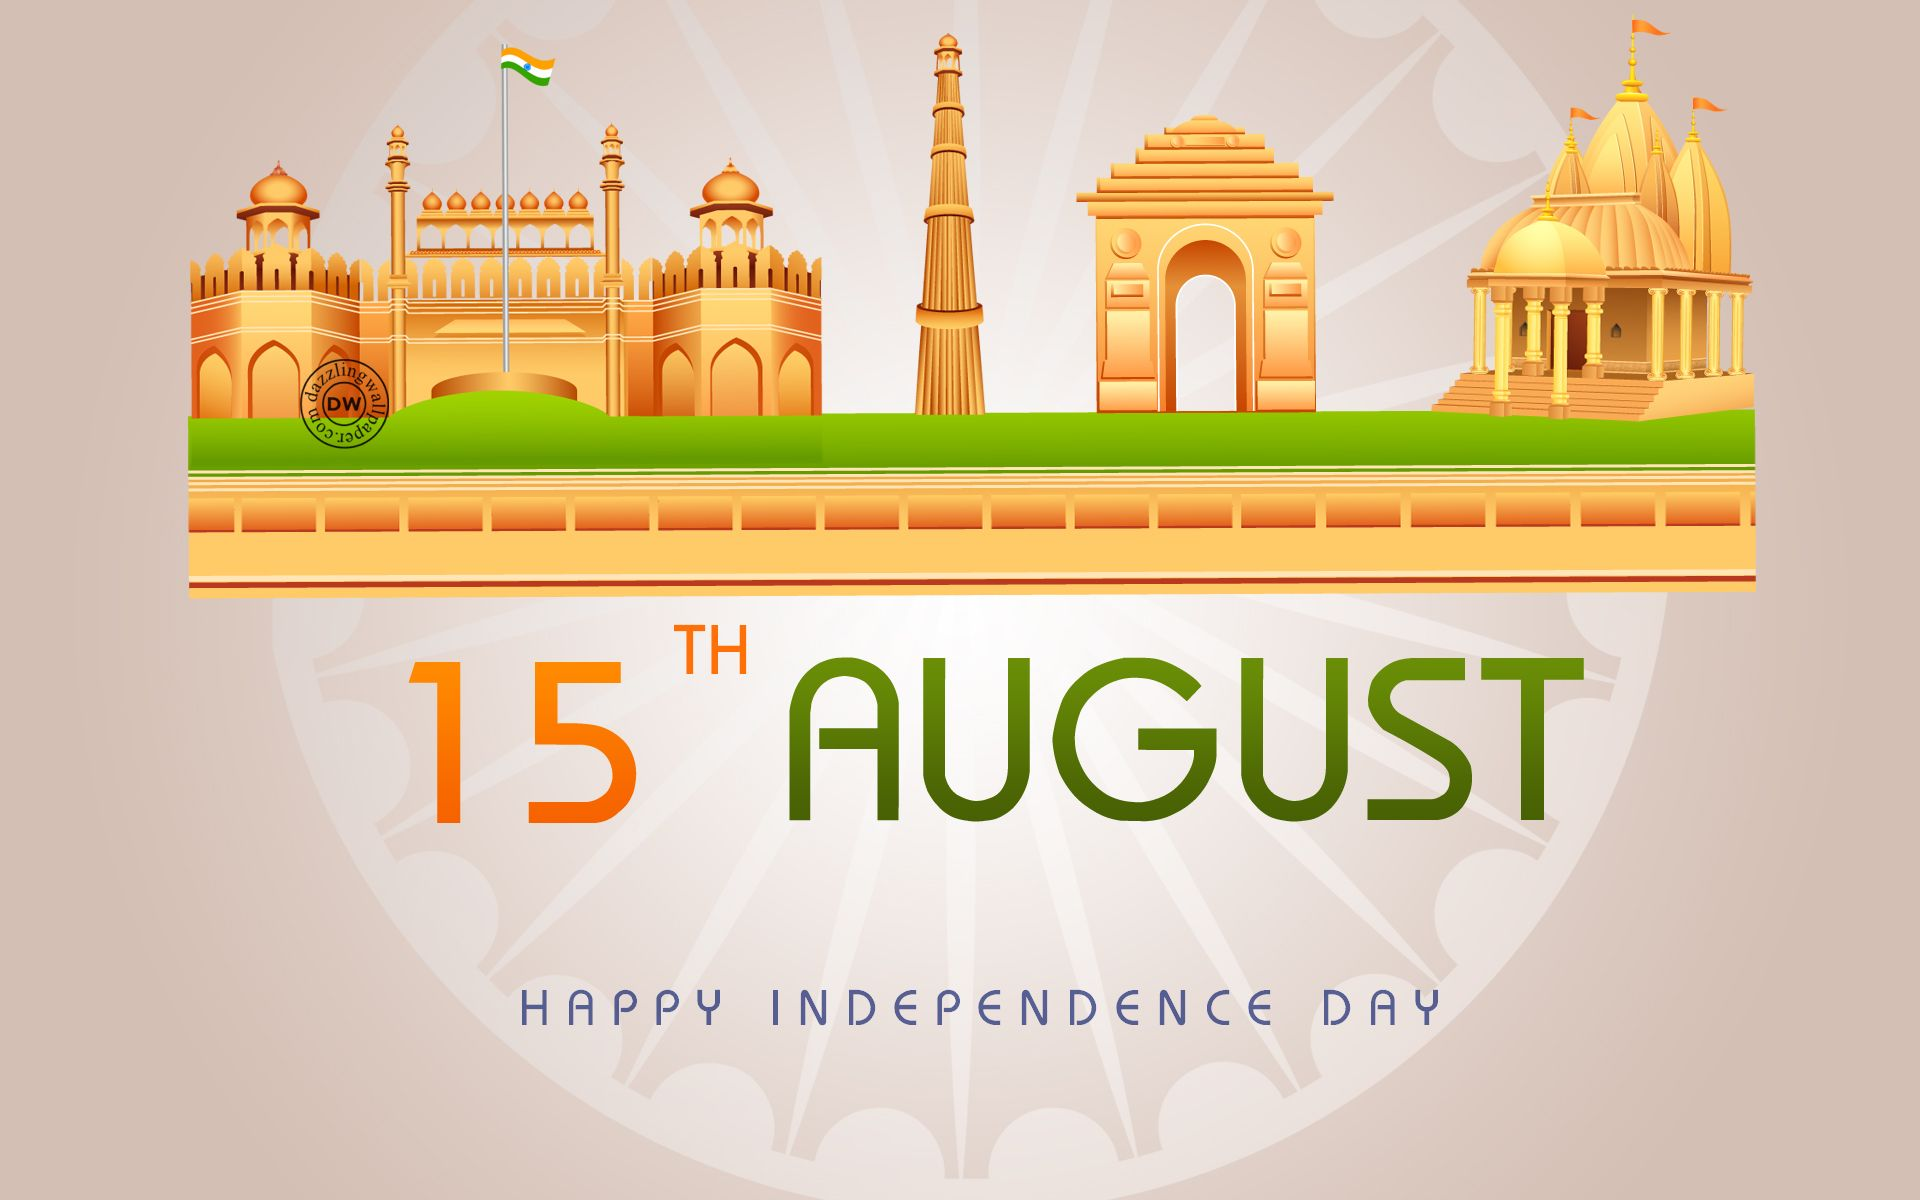 independence day hd independence day th independence day hd independence day 15th latest i love